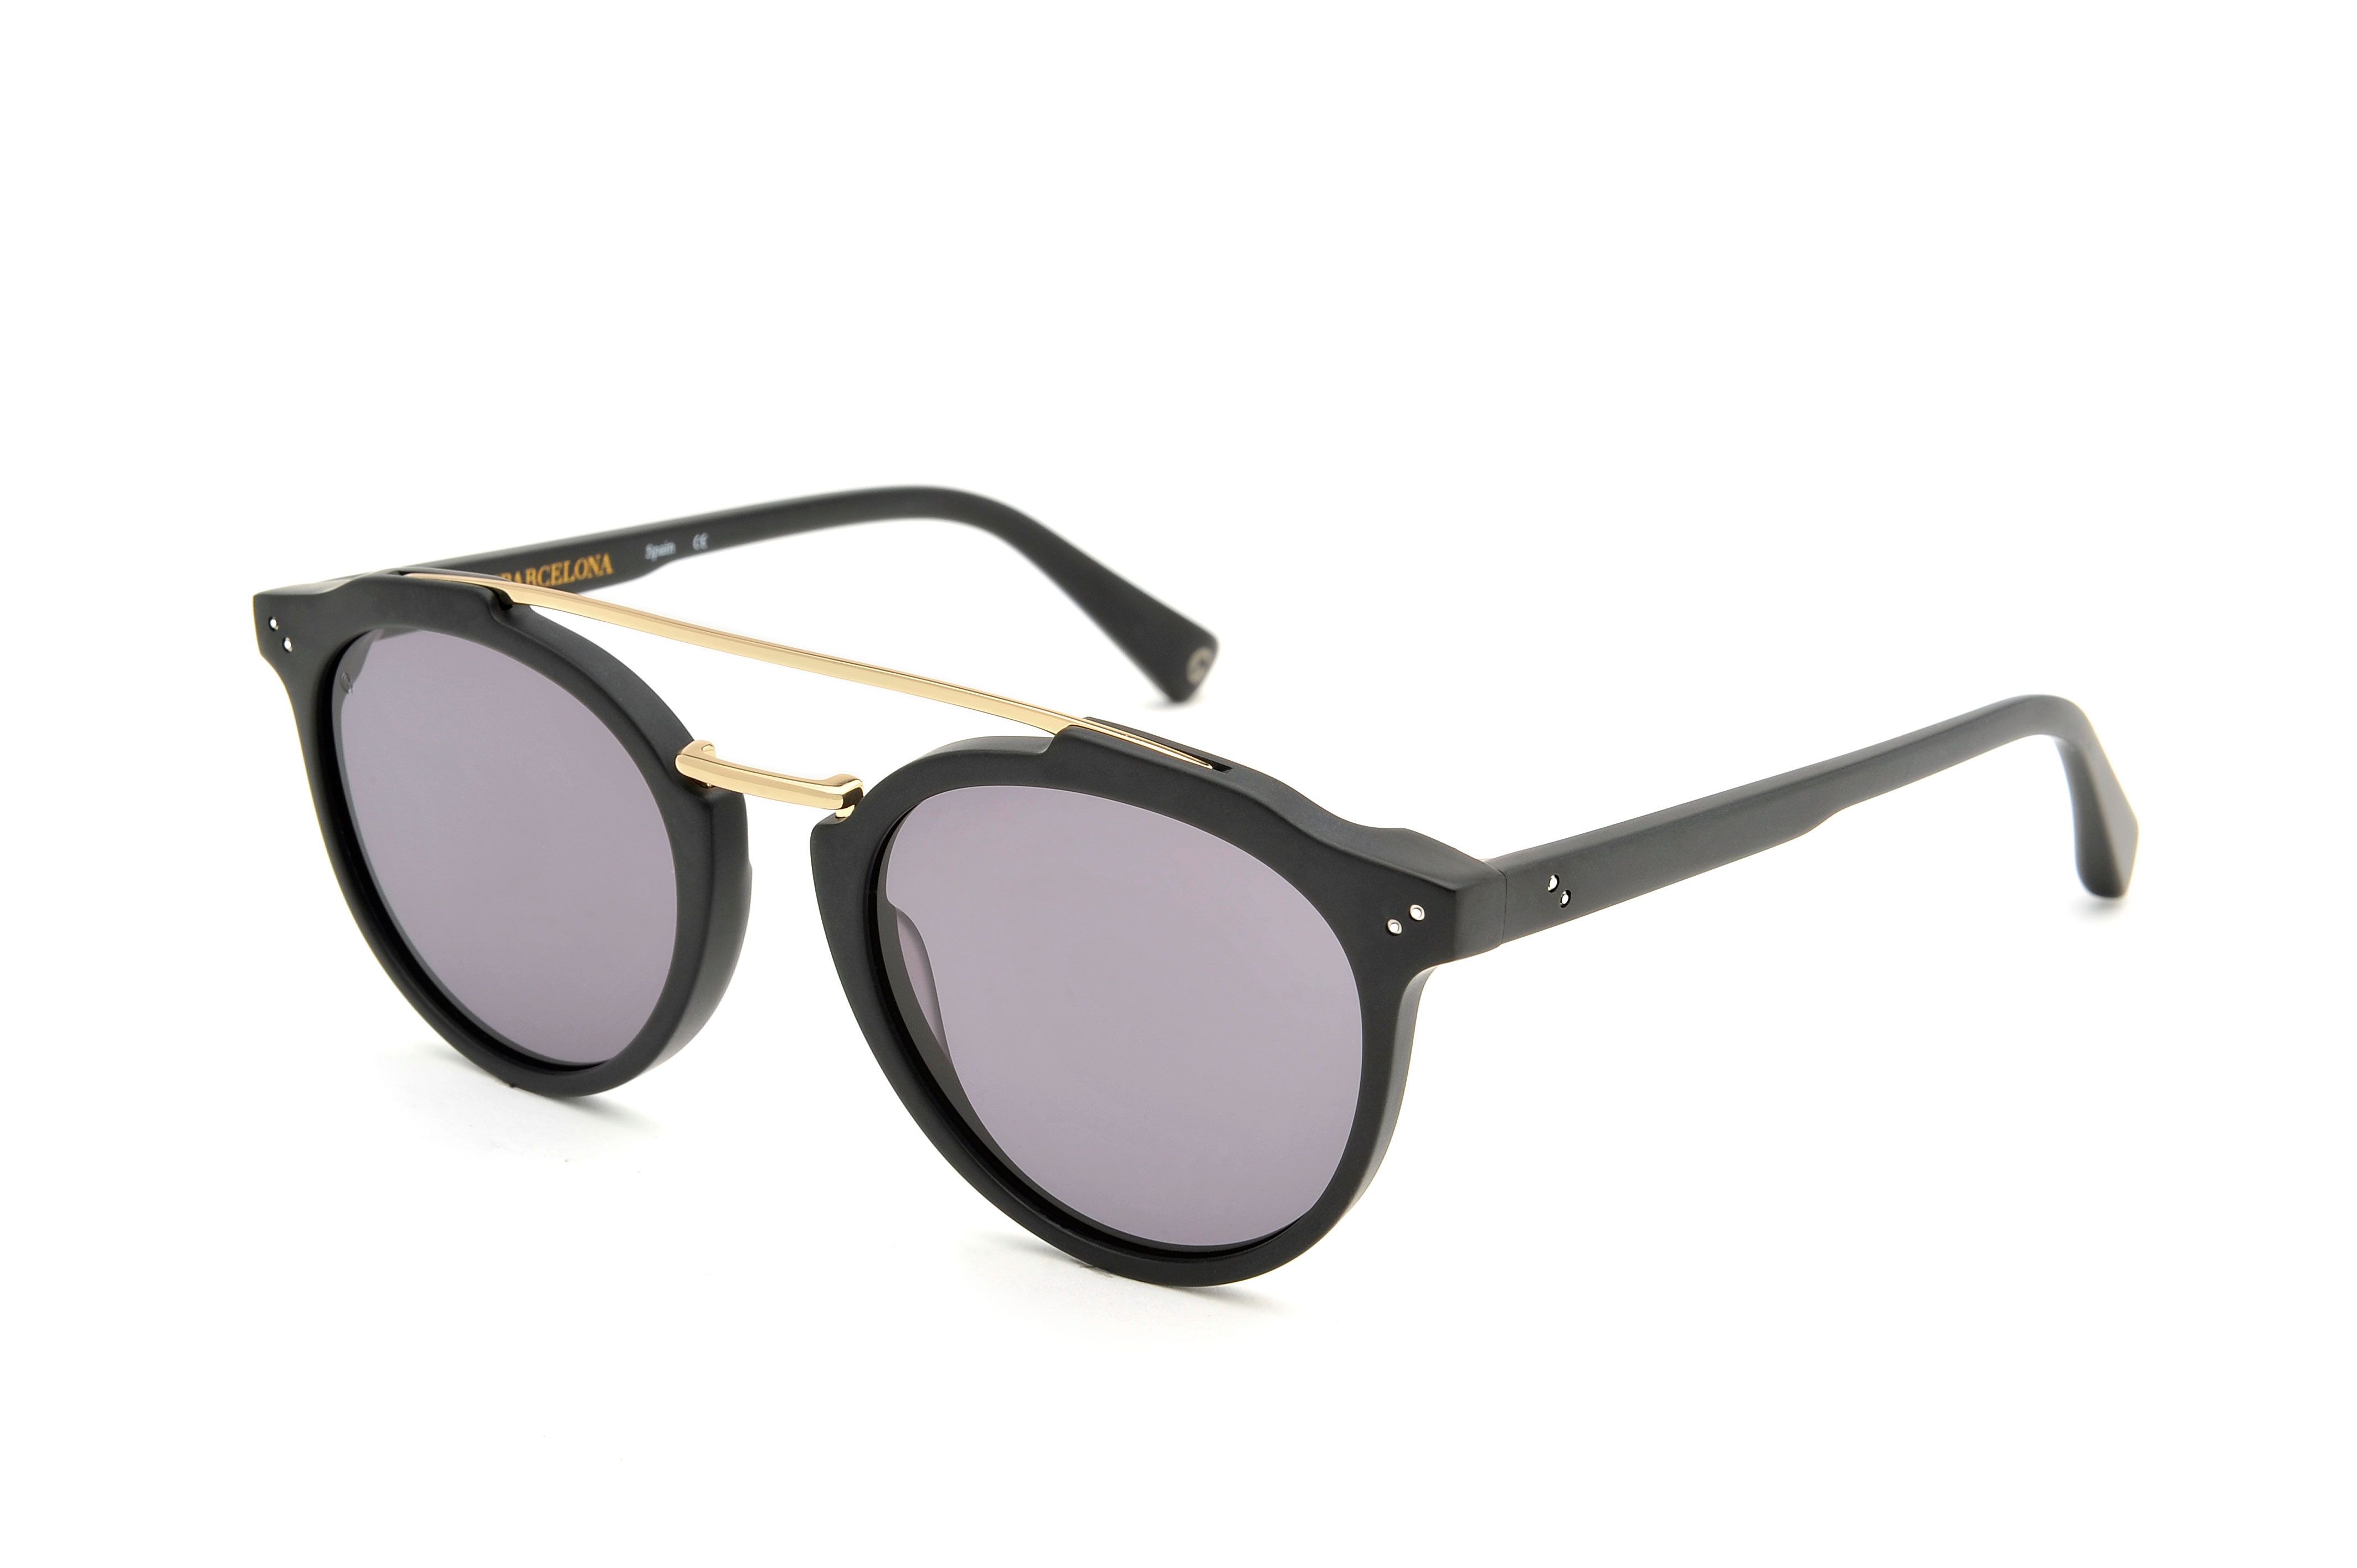 Voyage acetate/metal aviator black sunglasses by GIGI Studios